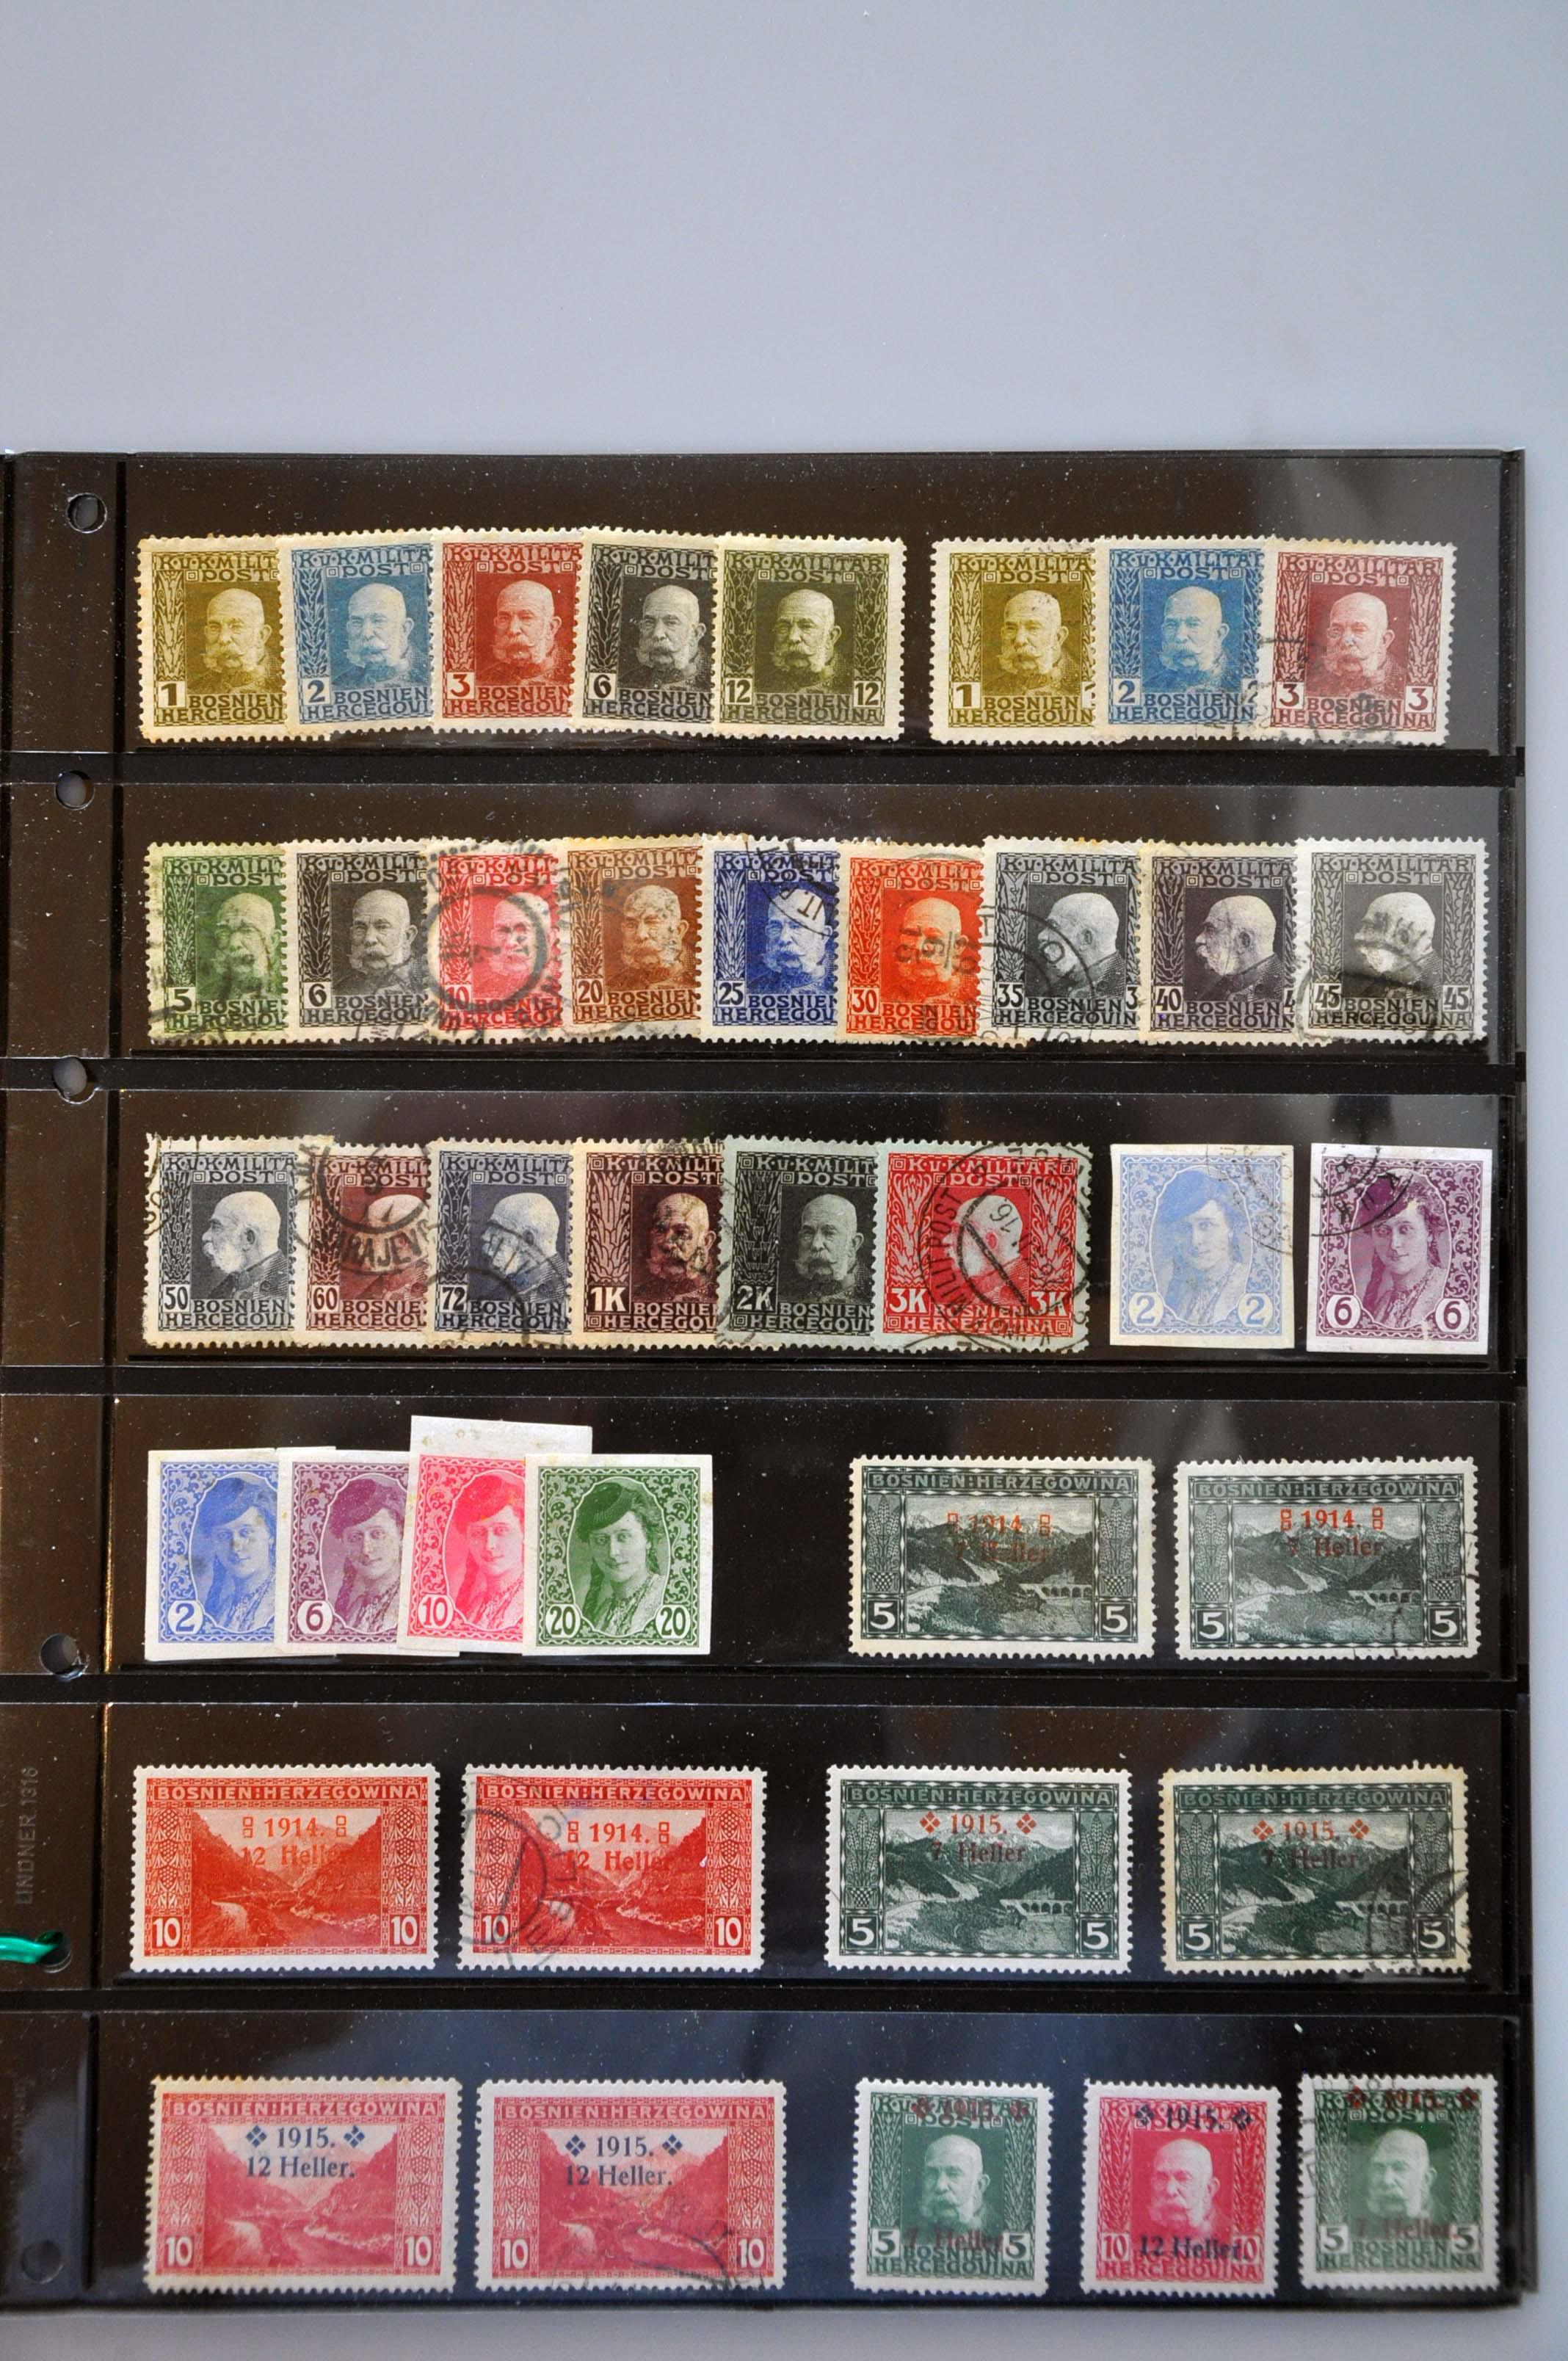 Lot 586 - Austria and former territories Bosnia and Herzegovina (Austrian) -  Corinphila Veilingen Auction 245-246 Day 2 - Foreign countries - Collections and lots, Foreign countries - Boxes and literature